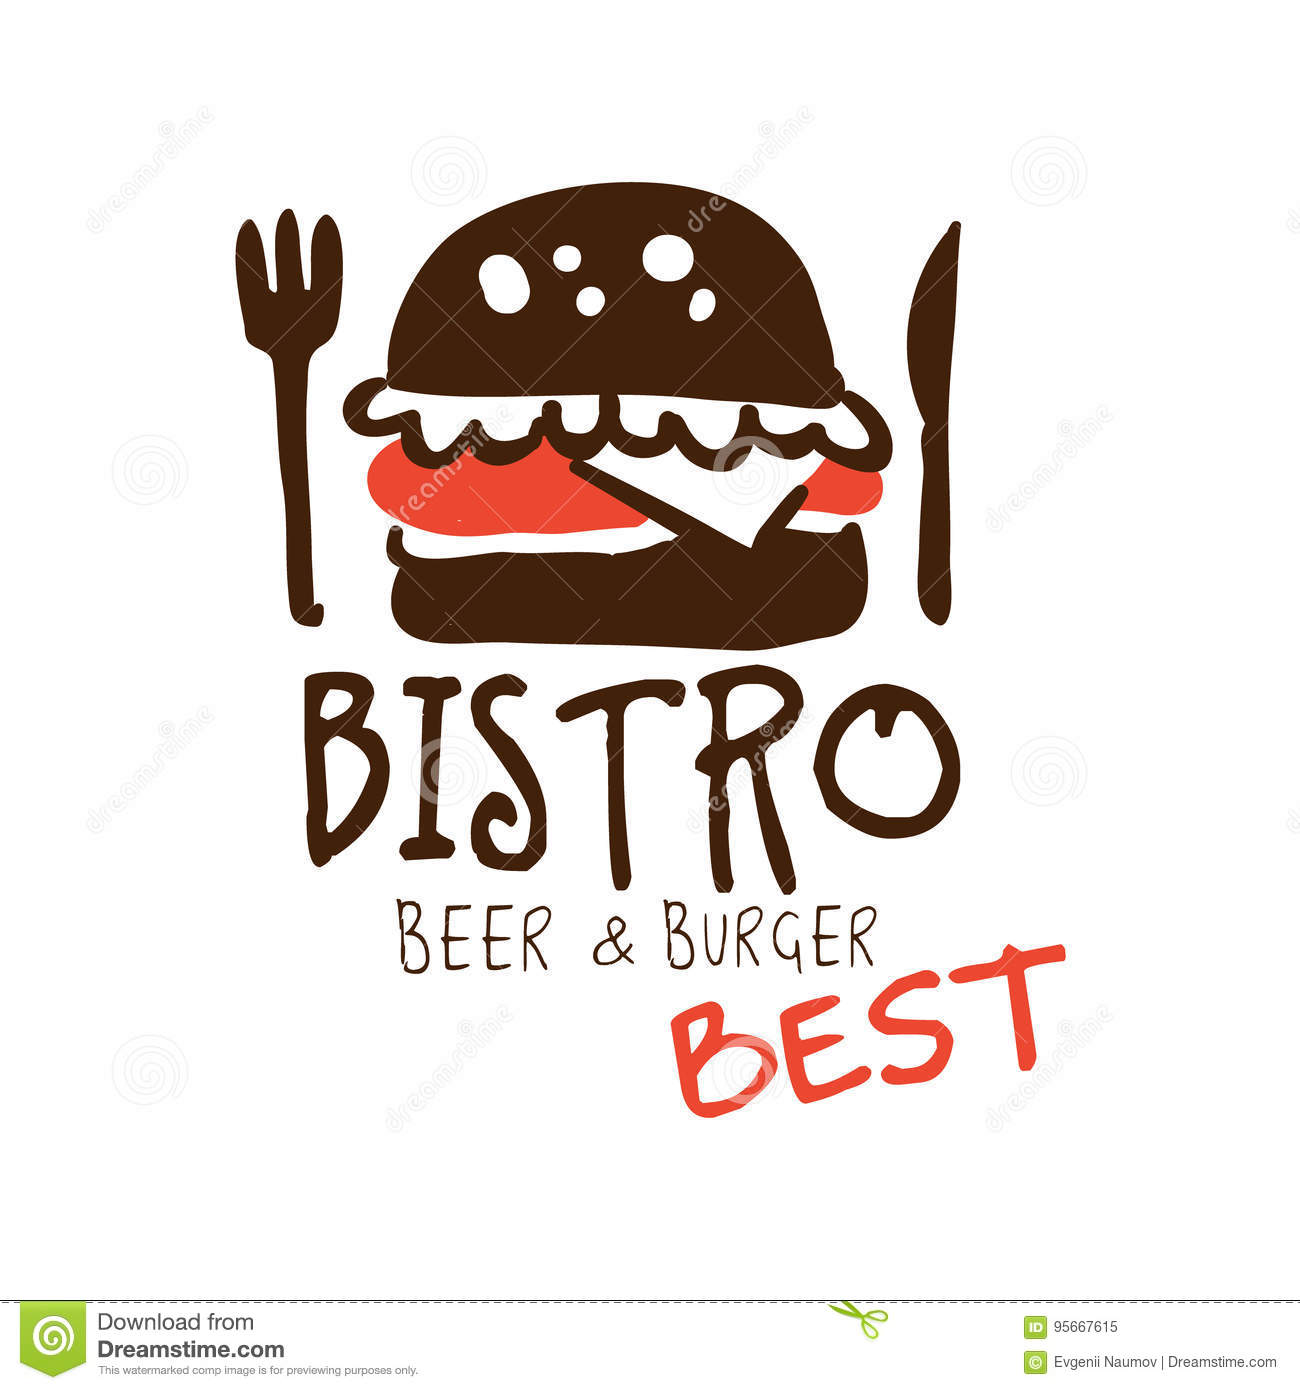 Bistro Beer And Burger Logo Template Hand Drawn Colorful Vector Illustration Stock Vector Illustration Of Banner Lunch 95667615